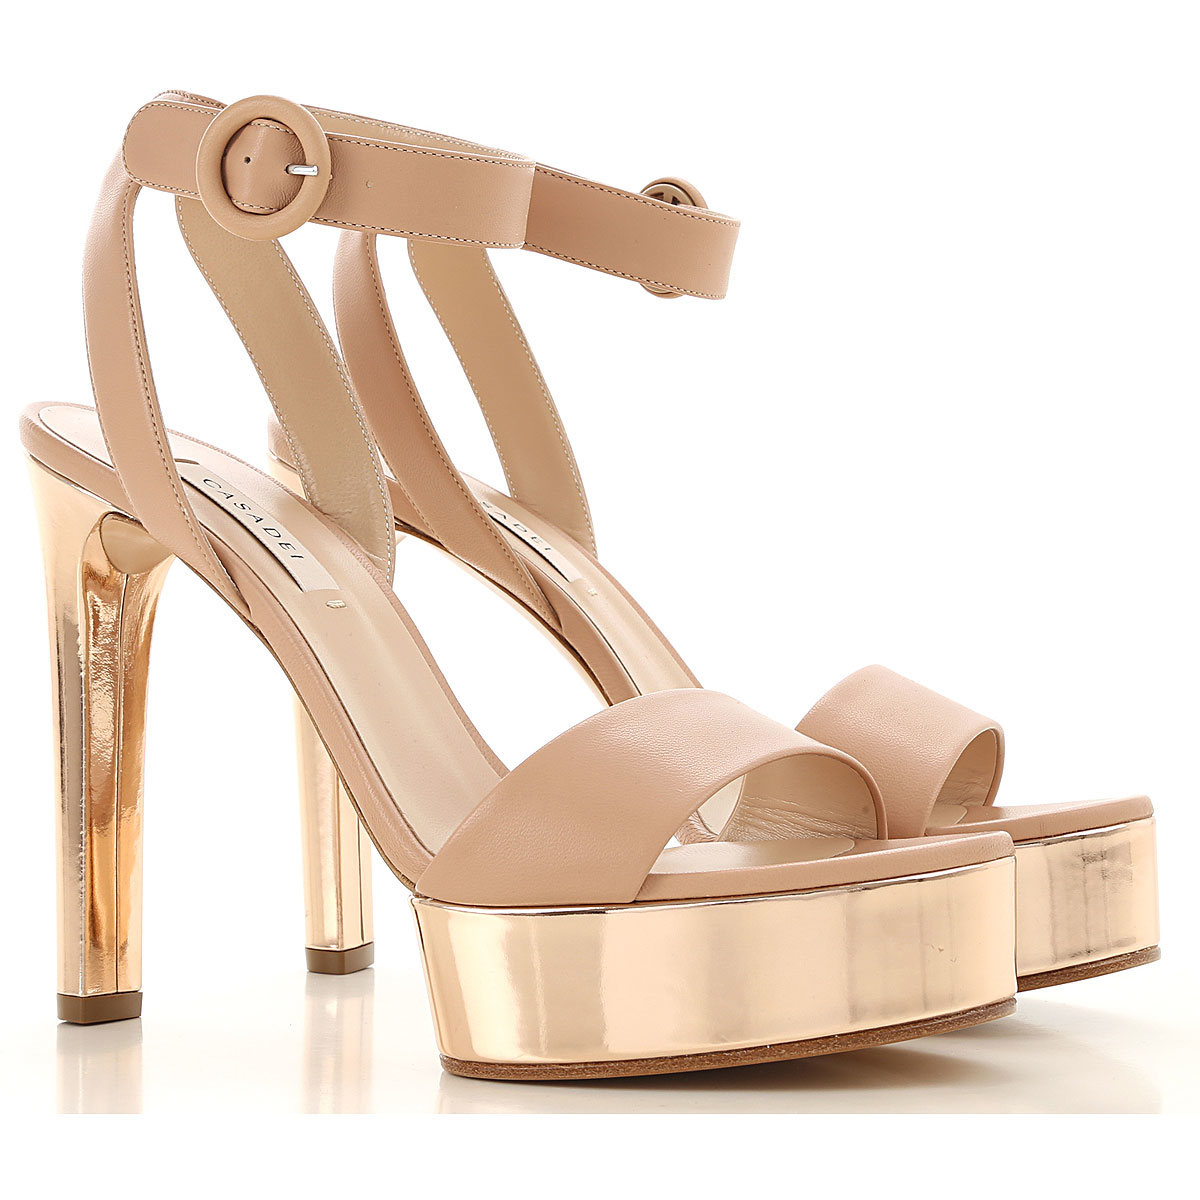 Casadei Sandals for Women On Sale Blush Nude DK - GOOFASH - Womens SANDALS